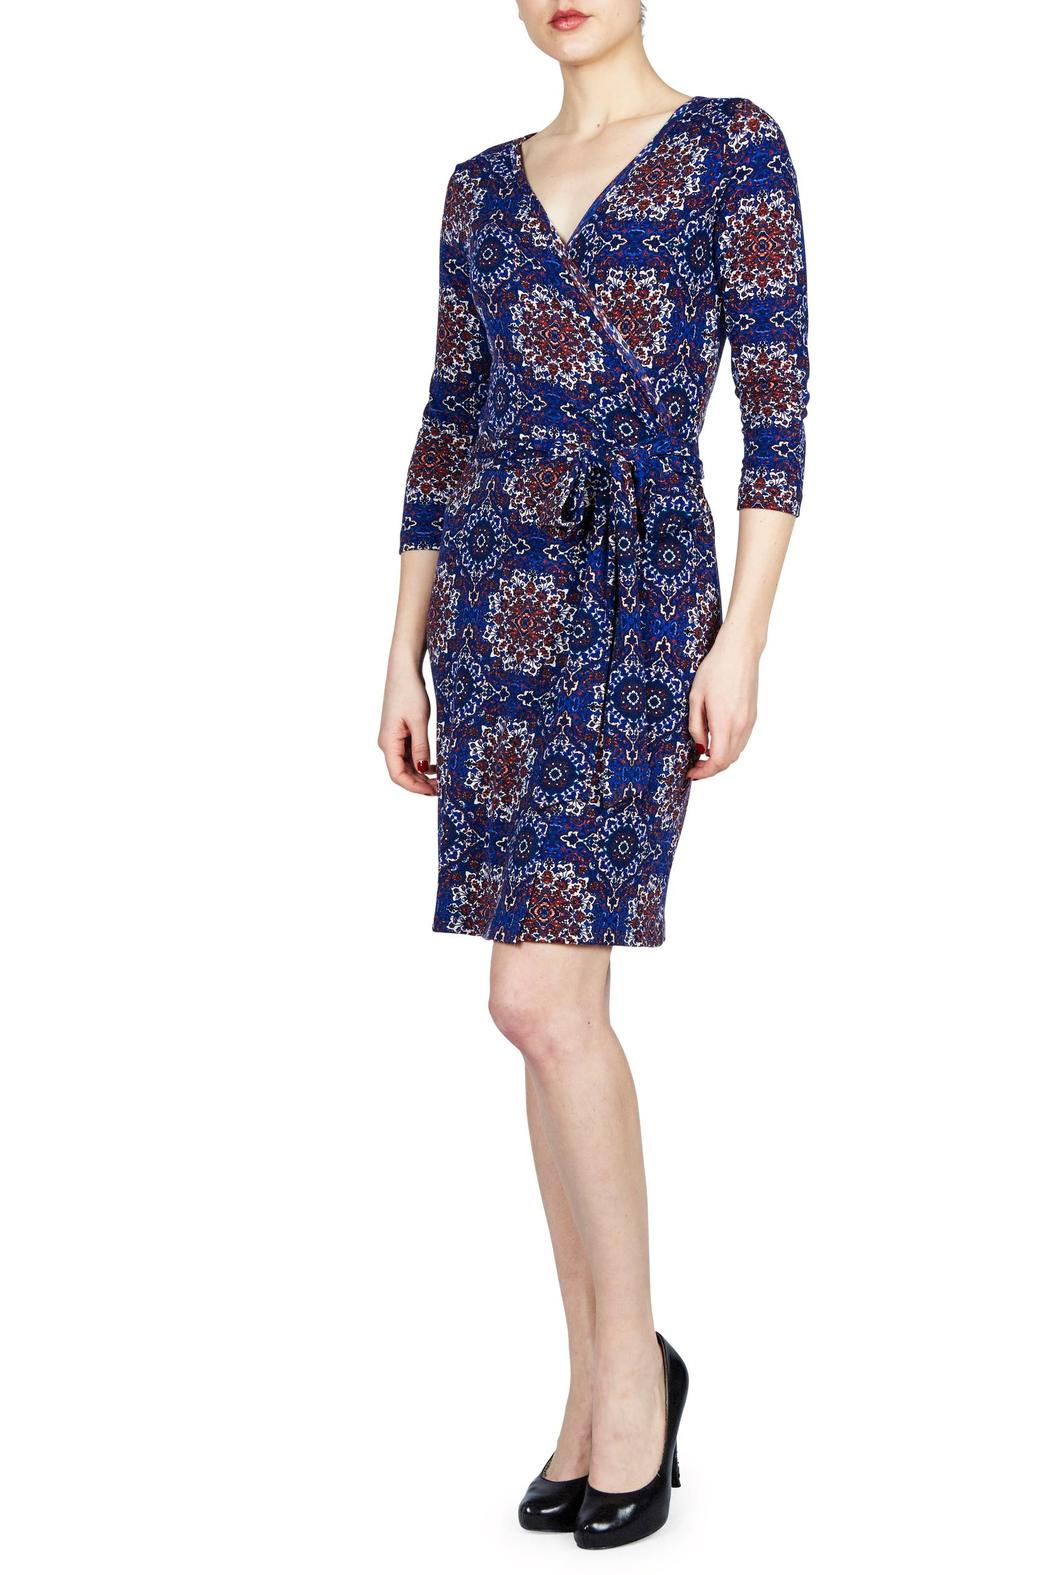 Renee C Faux Wrap Dress - Front Cropped Image